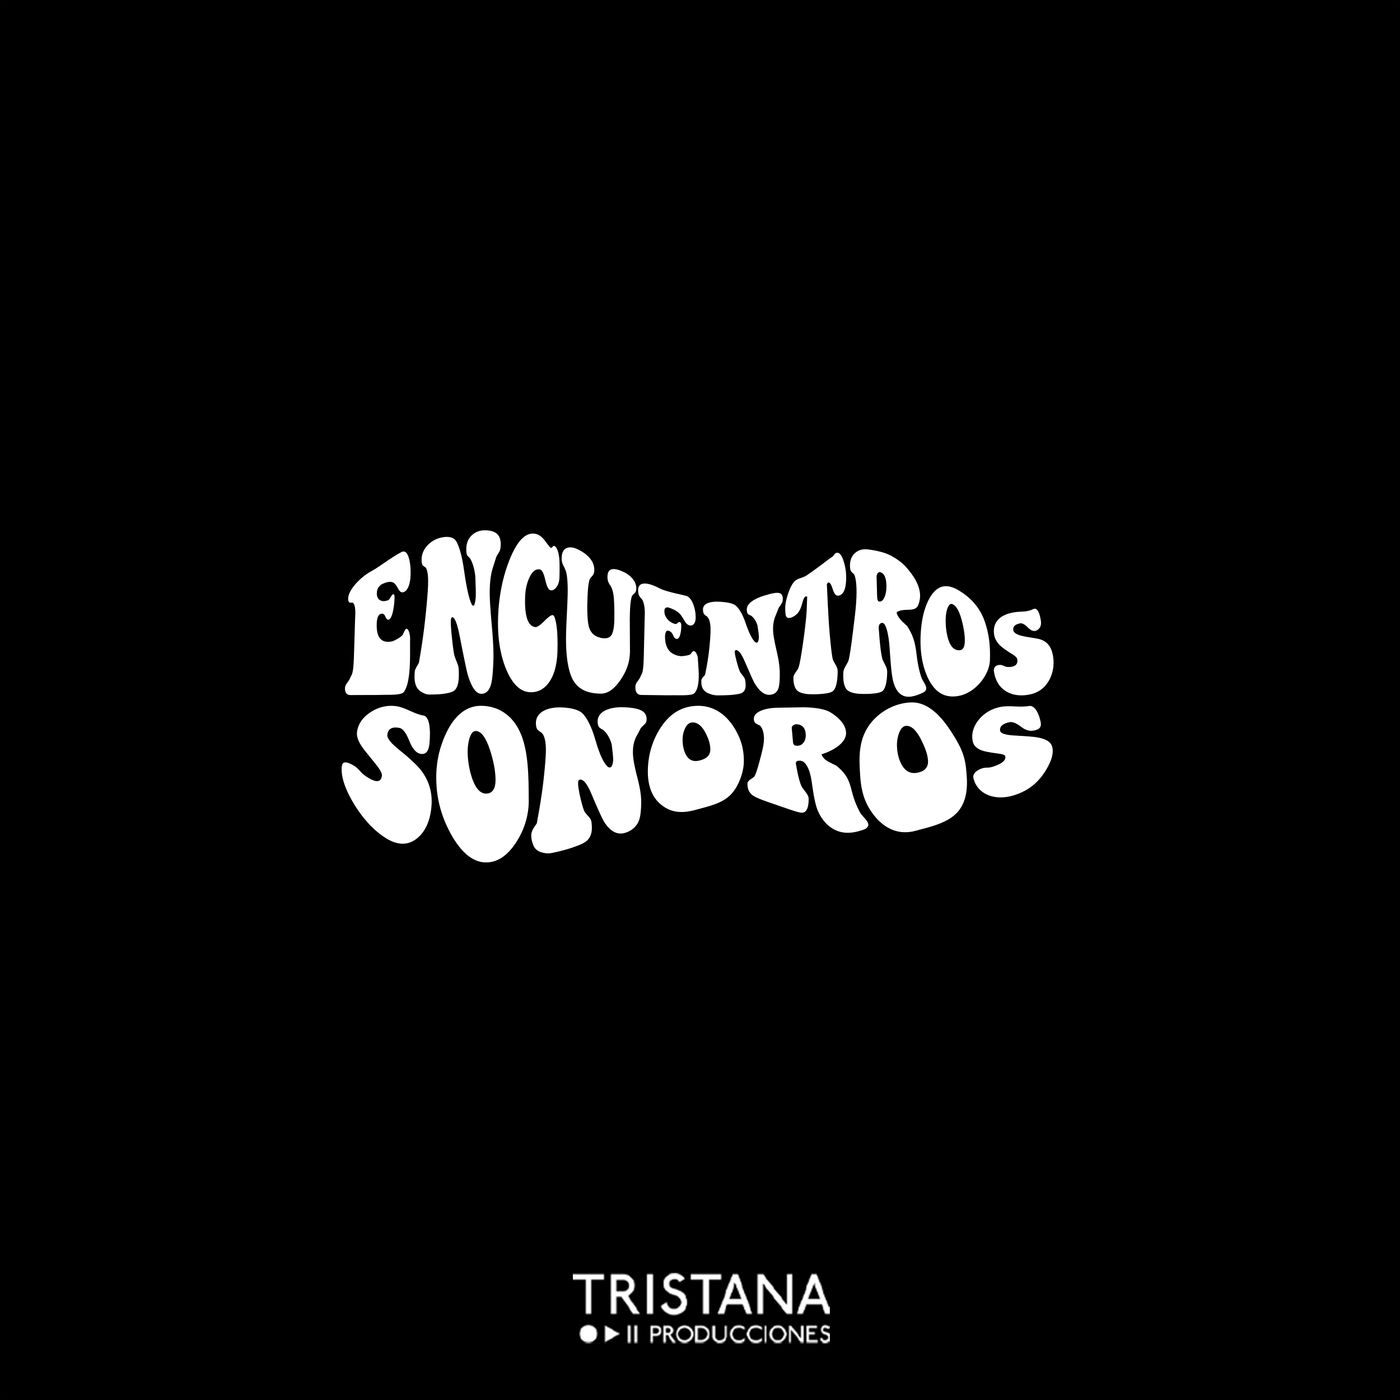 Encuentros sonoros podcast show image